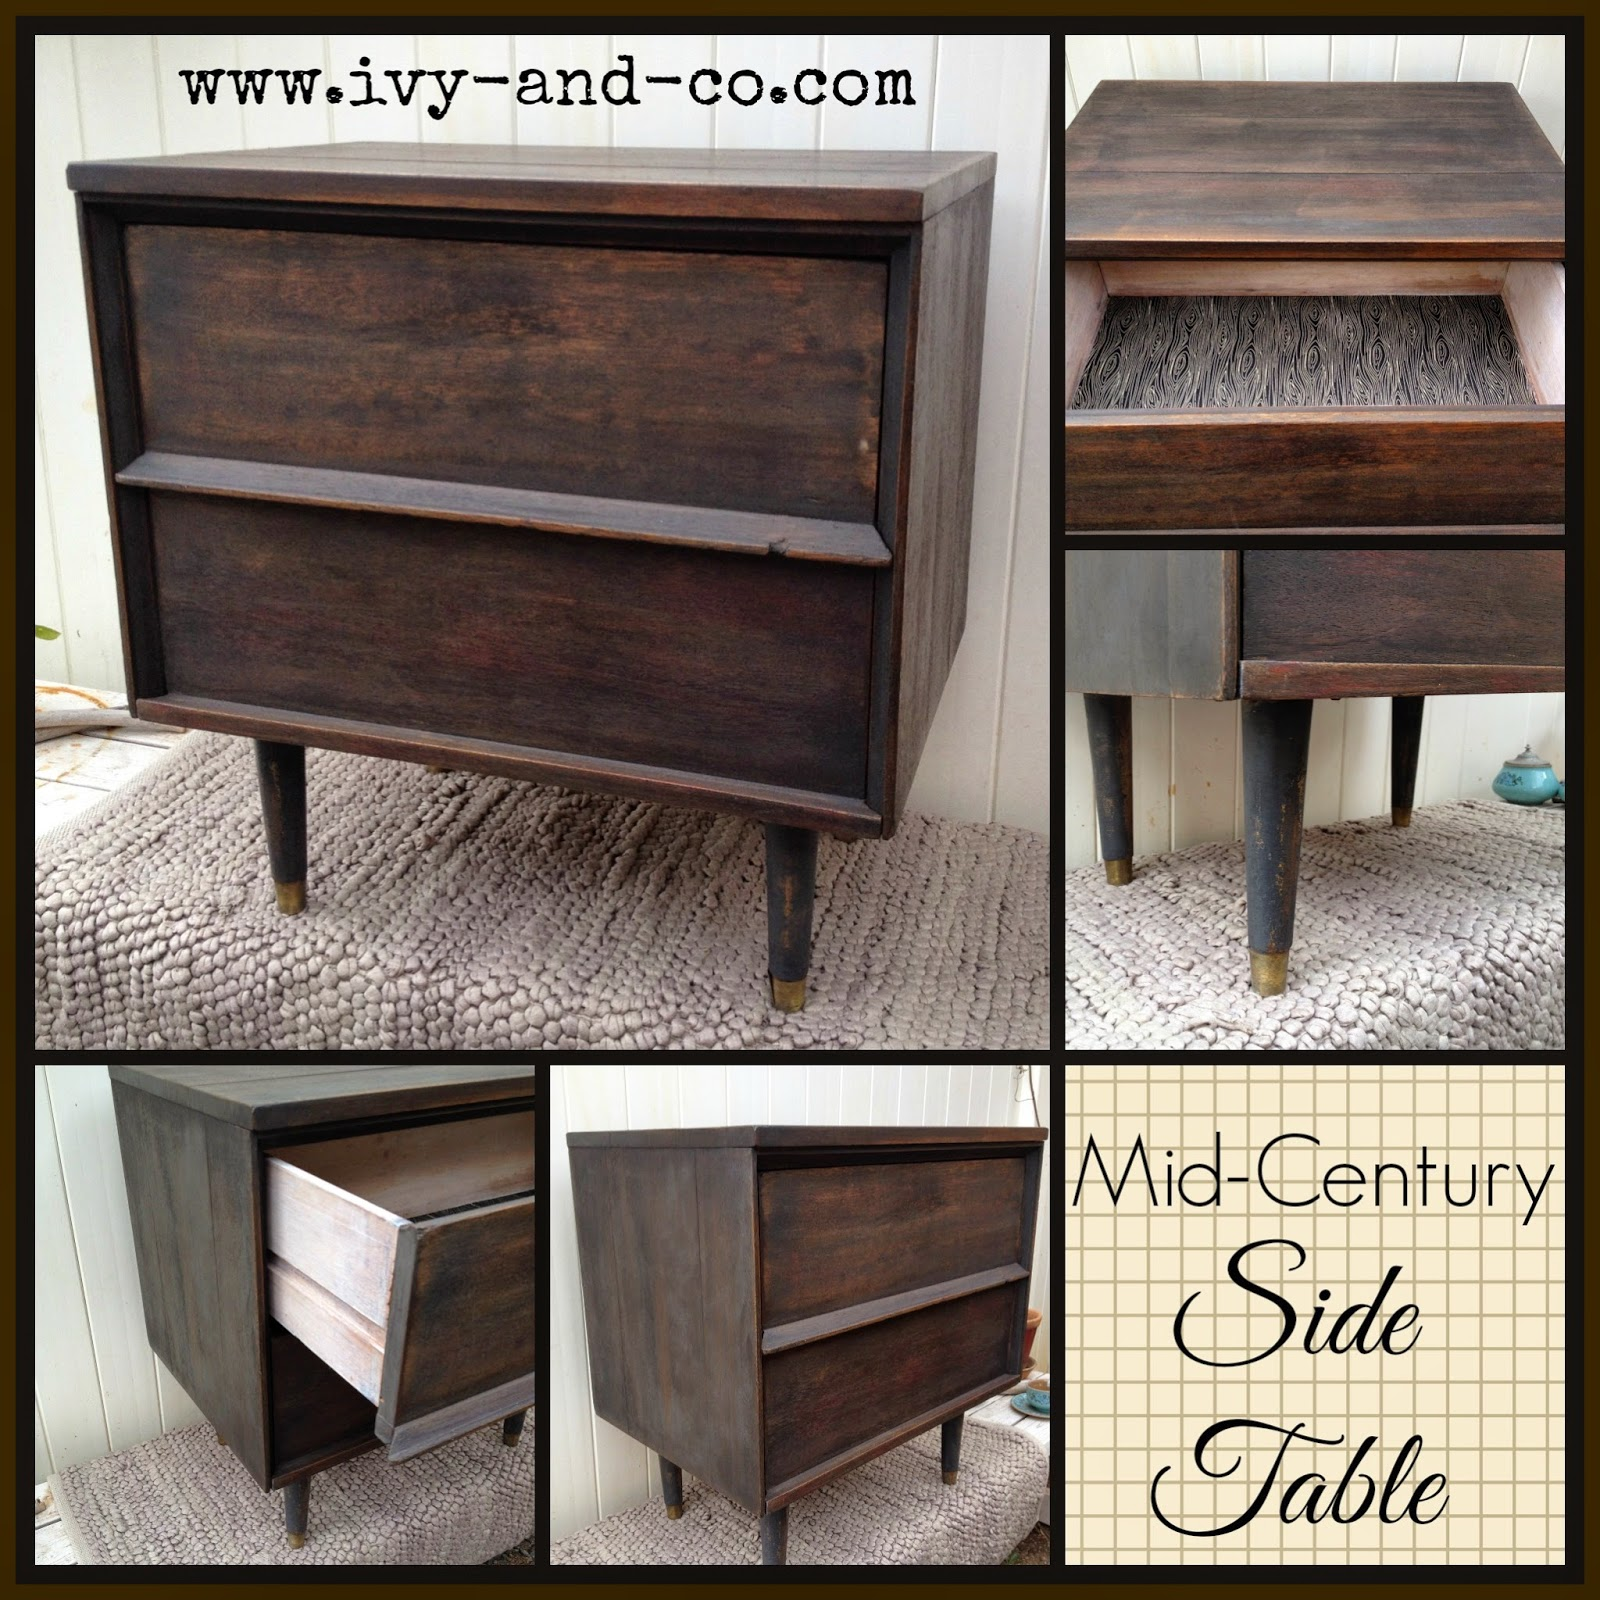 black DIY mid-century side table collage